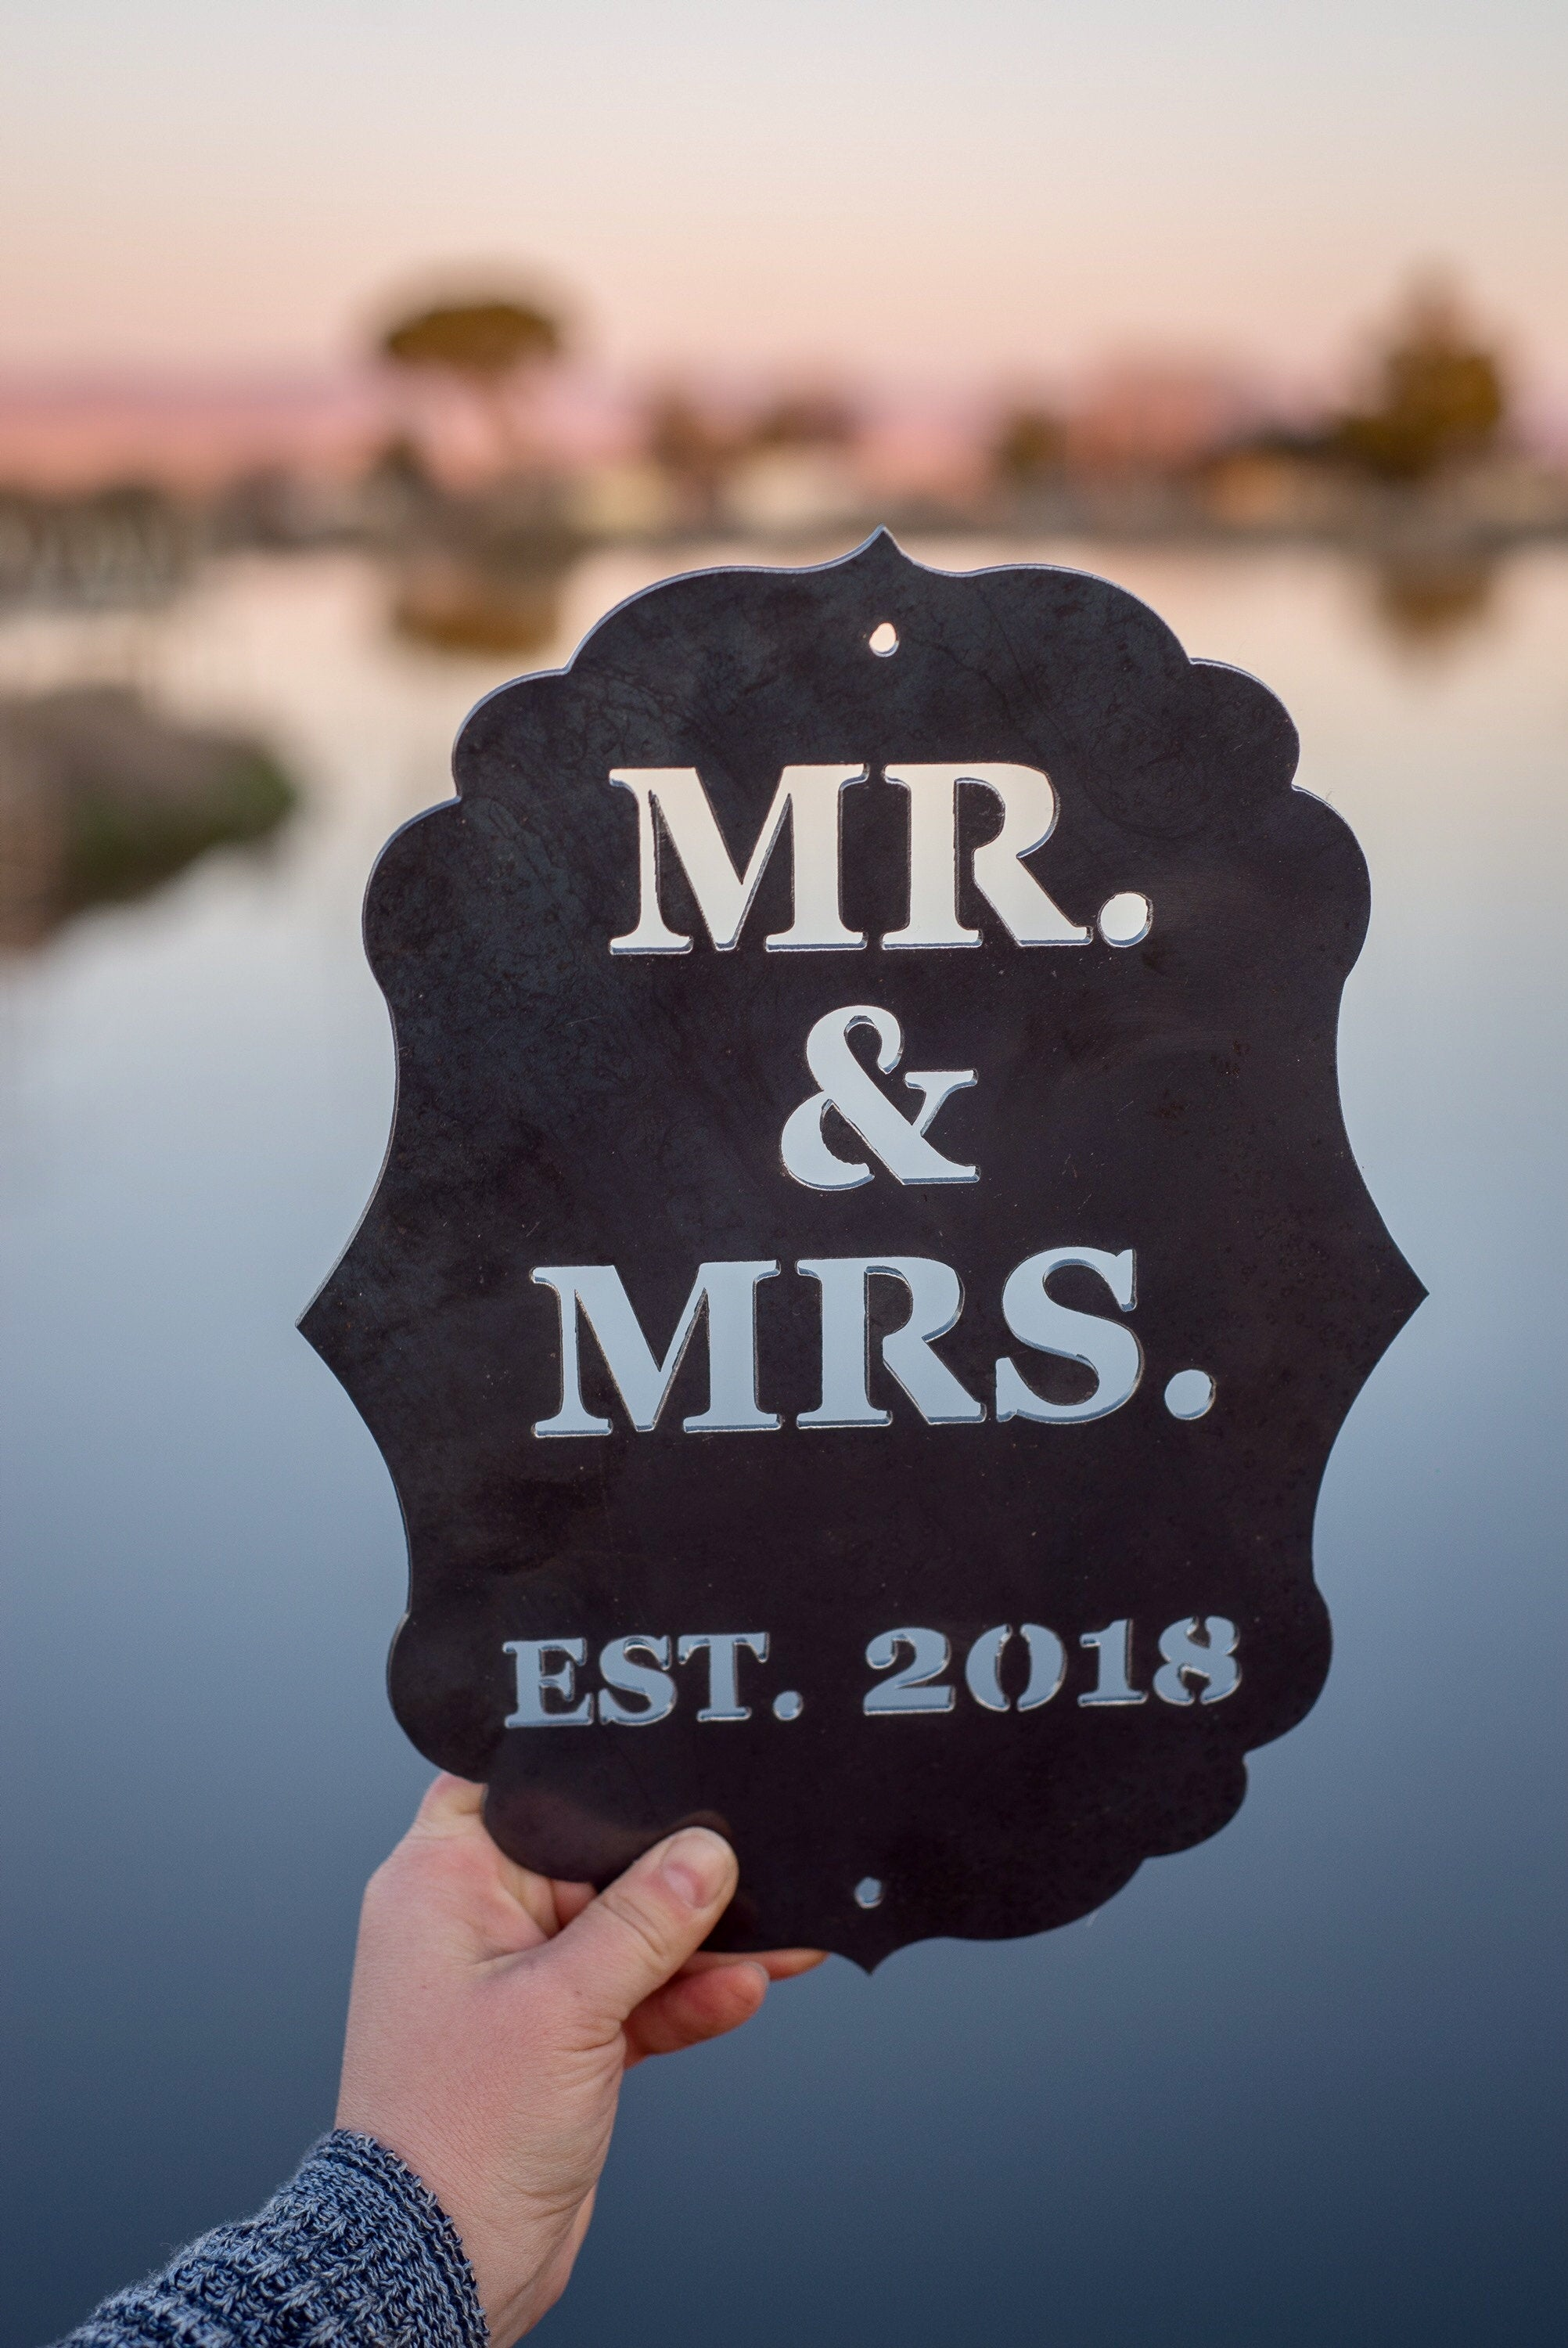 Mr & Mrs established Metal Wall Hanging